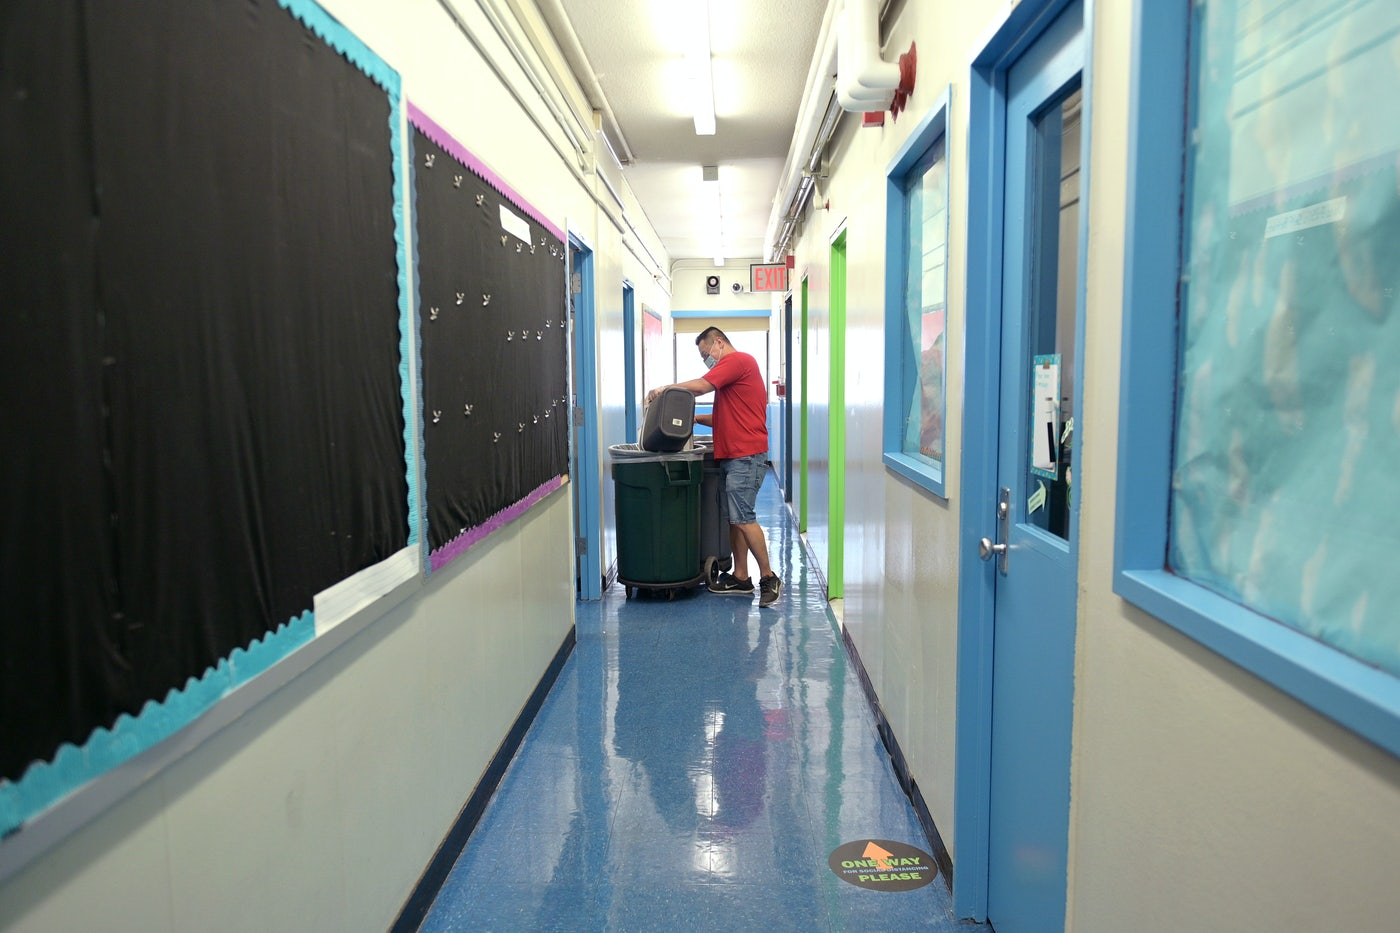 A worker at a public school in New York City cleans a hallway.